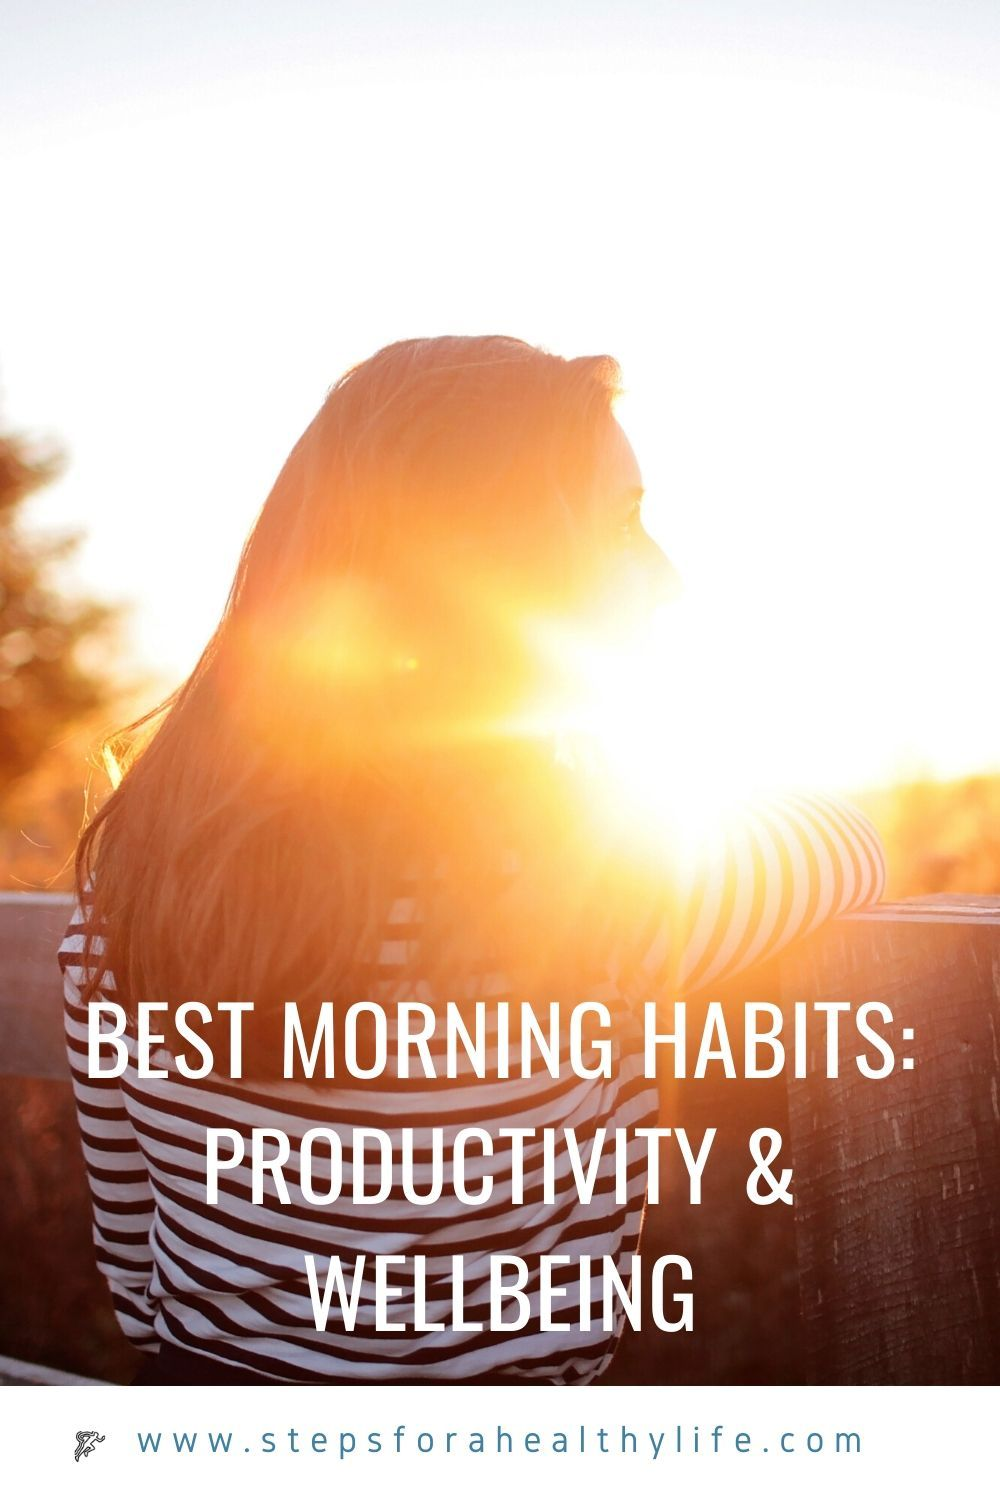 10 BEST HEALTHY MORNING HABITS: PRODUCTIVITY & WELLBEING 🌄